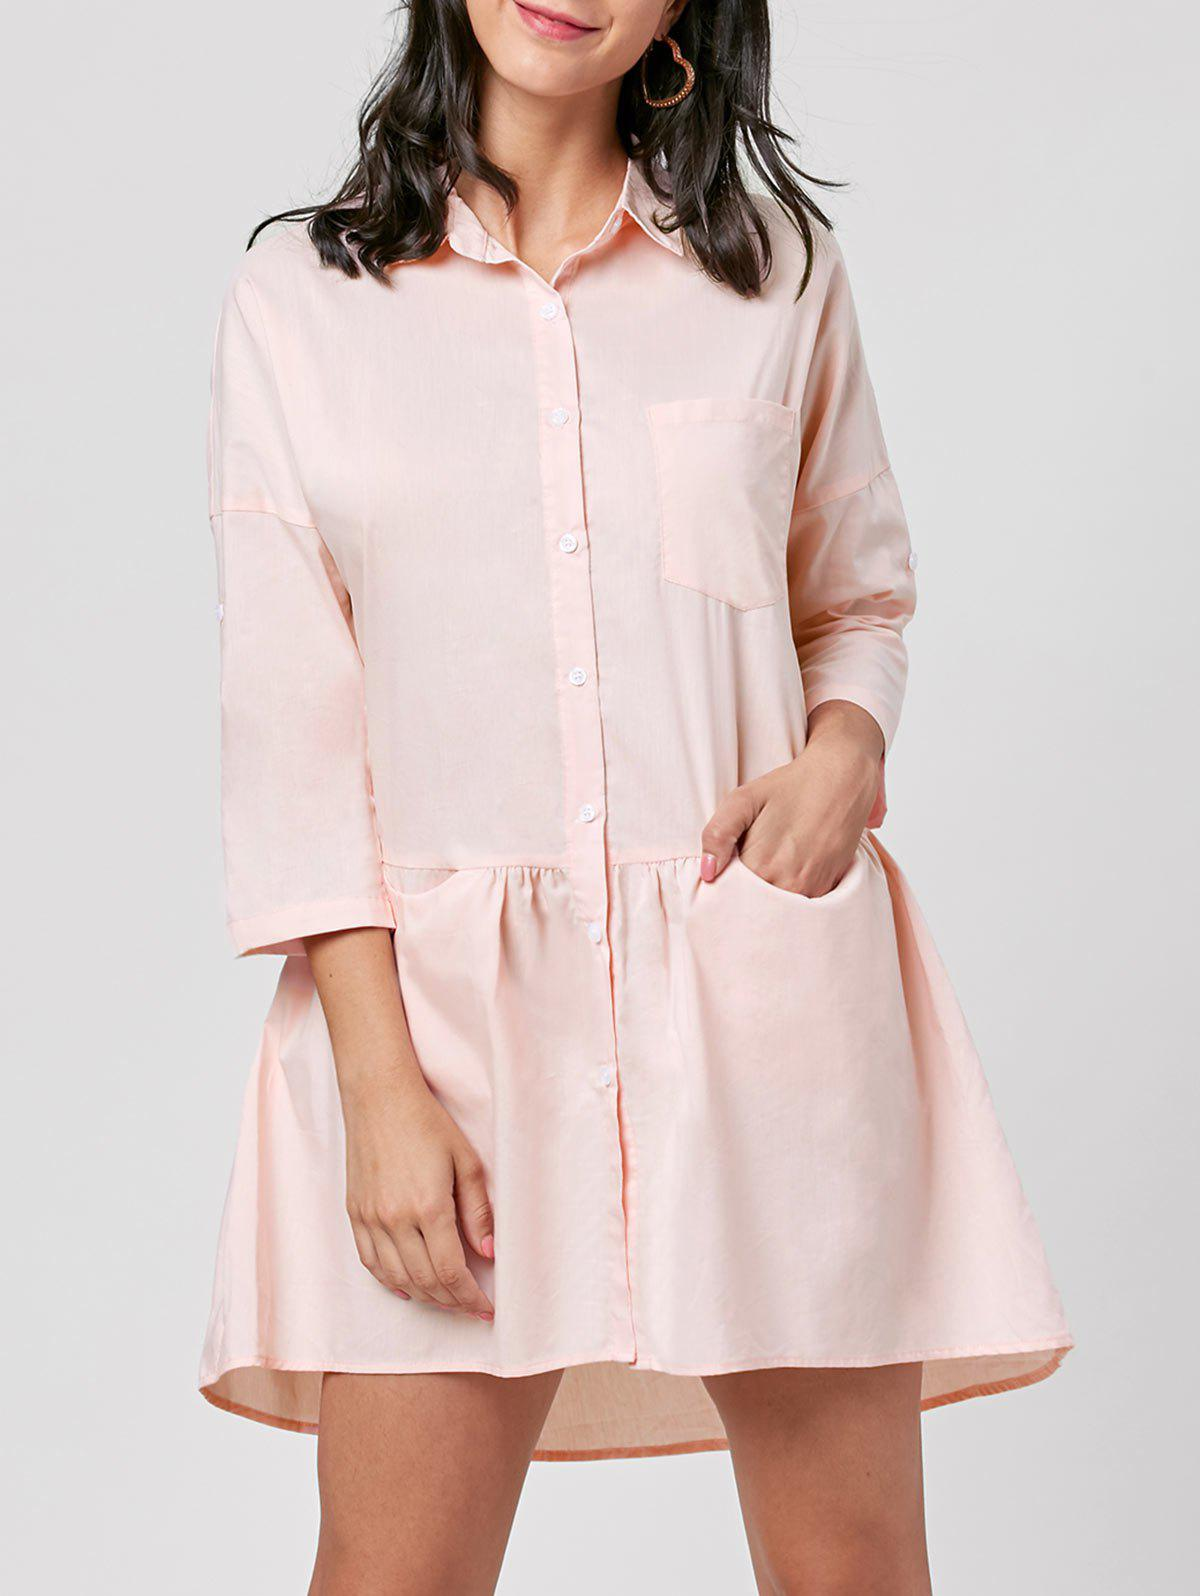 Patch Pocket Mini Shirt Dress - LIGHT PINK XL